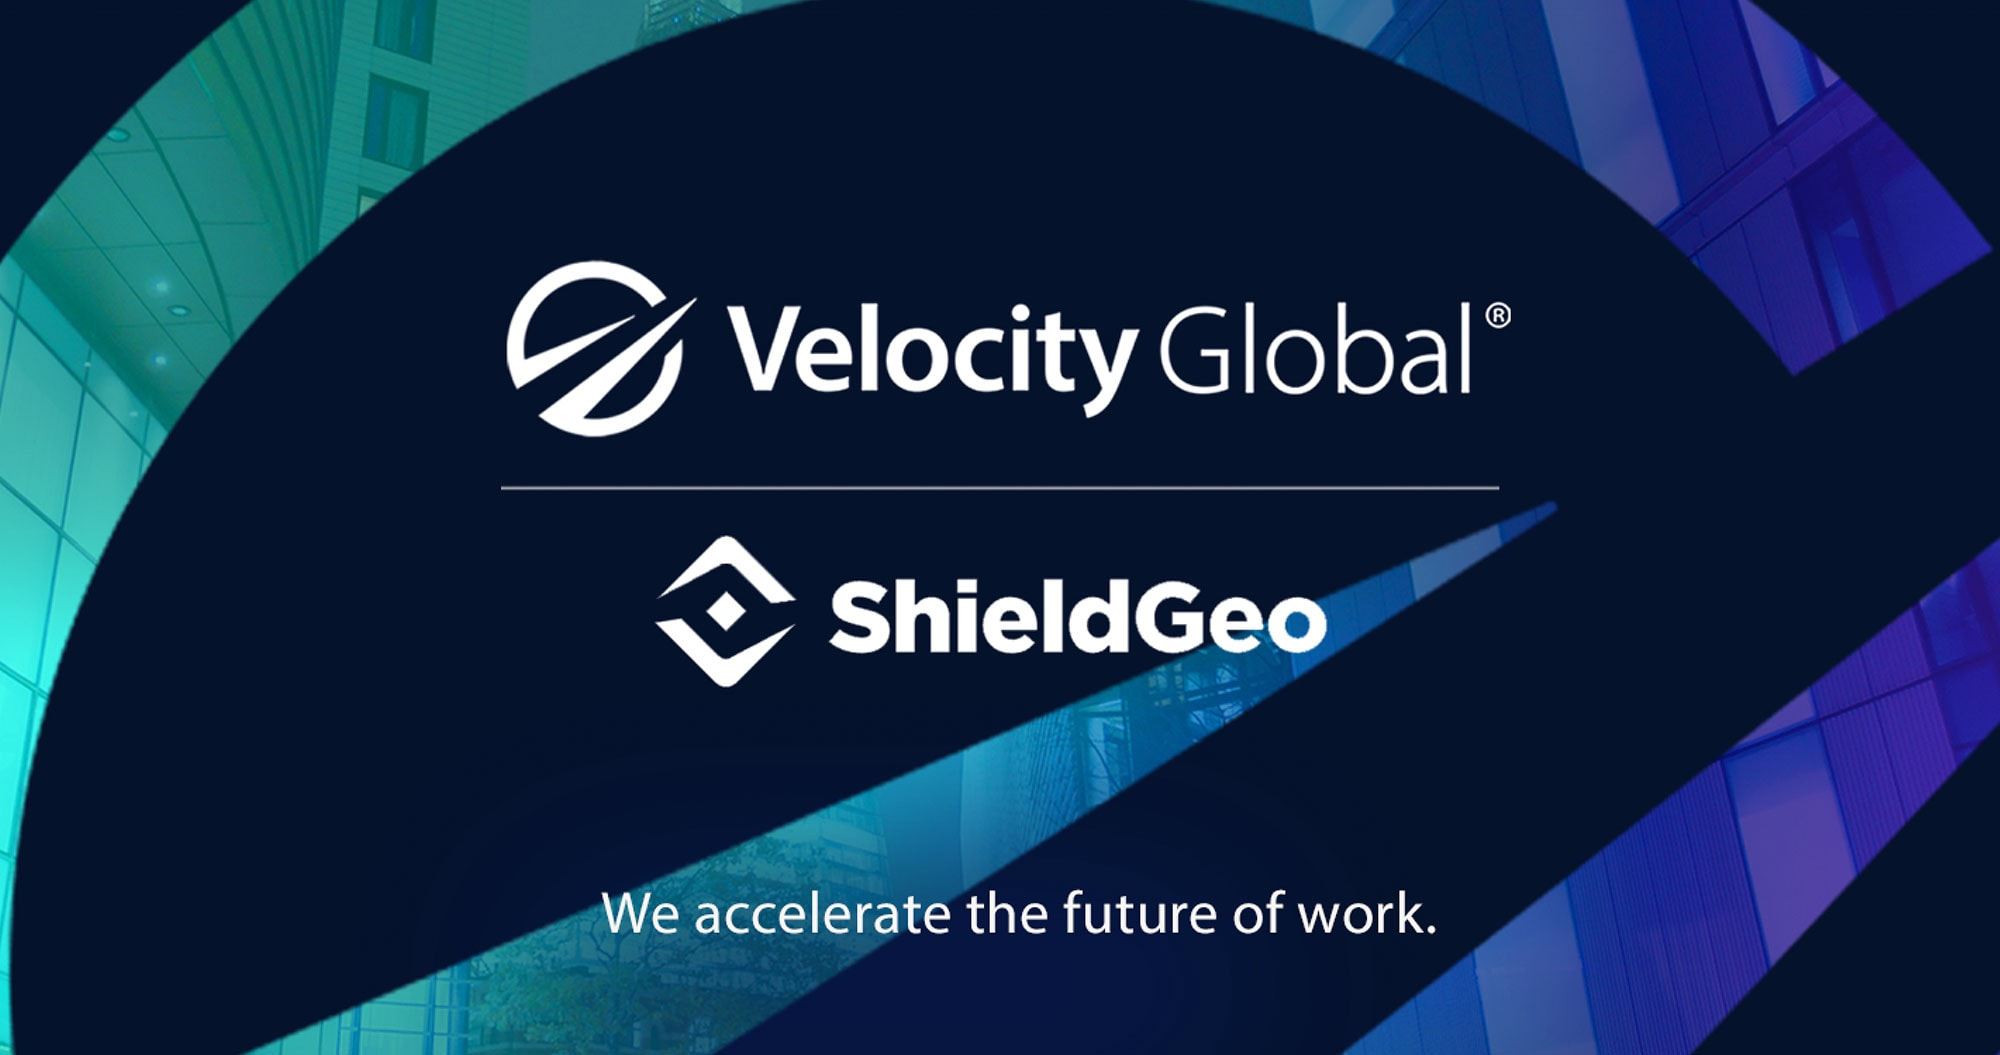 Velocity Global Acquires Shield GEO in Second Growth Transaction This Year